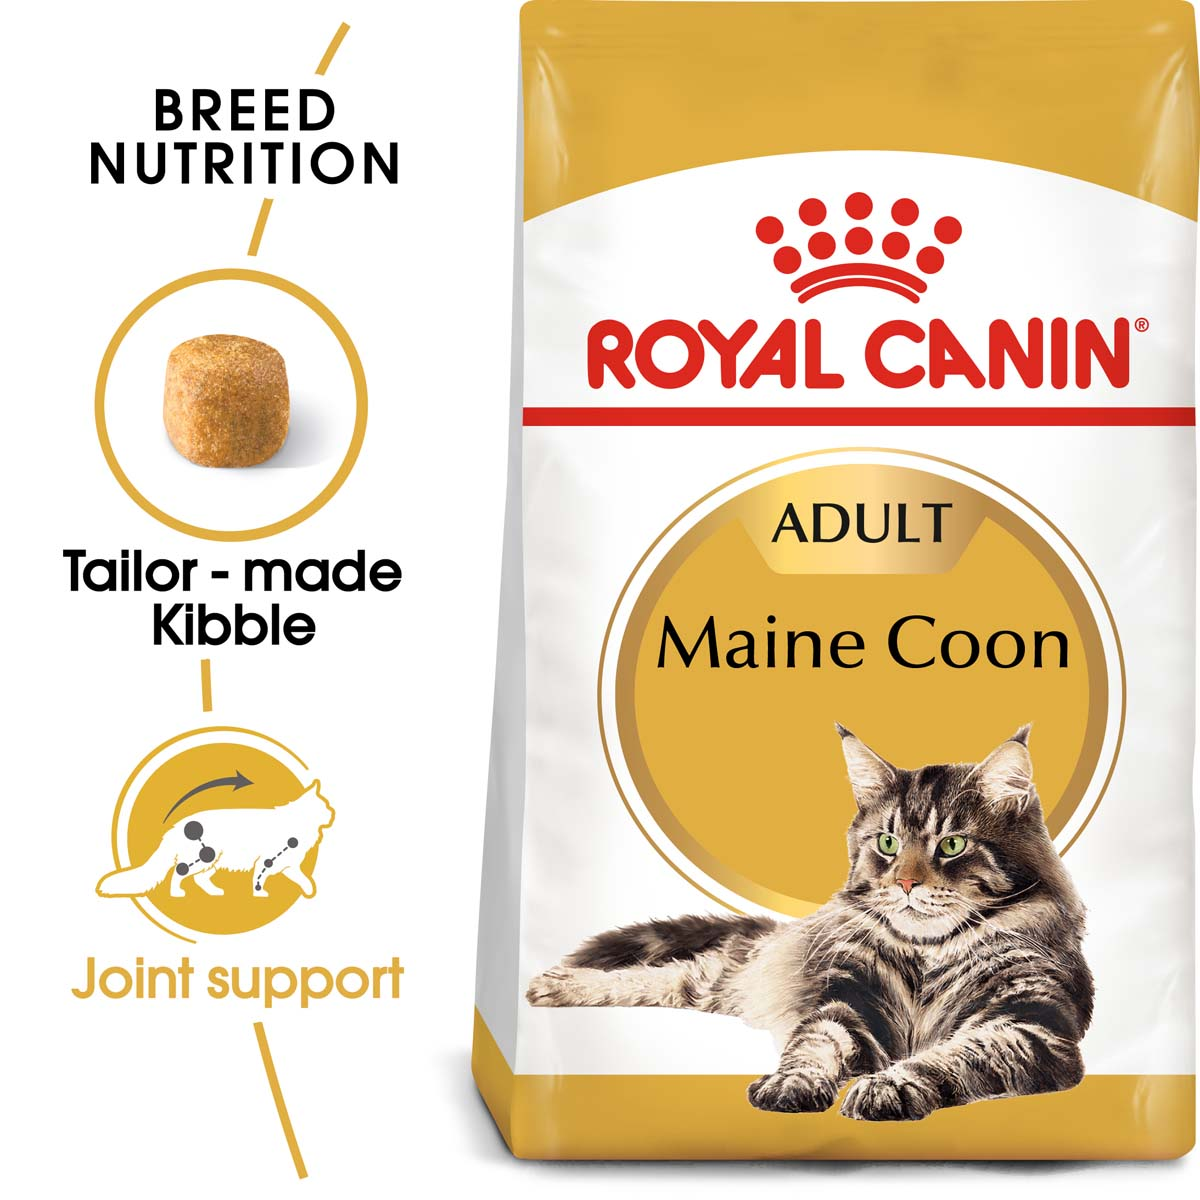 221313 1 royal canin maine coon adult k